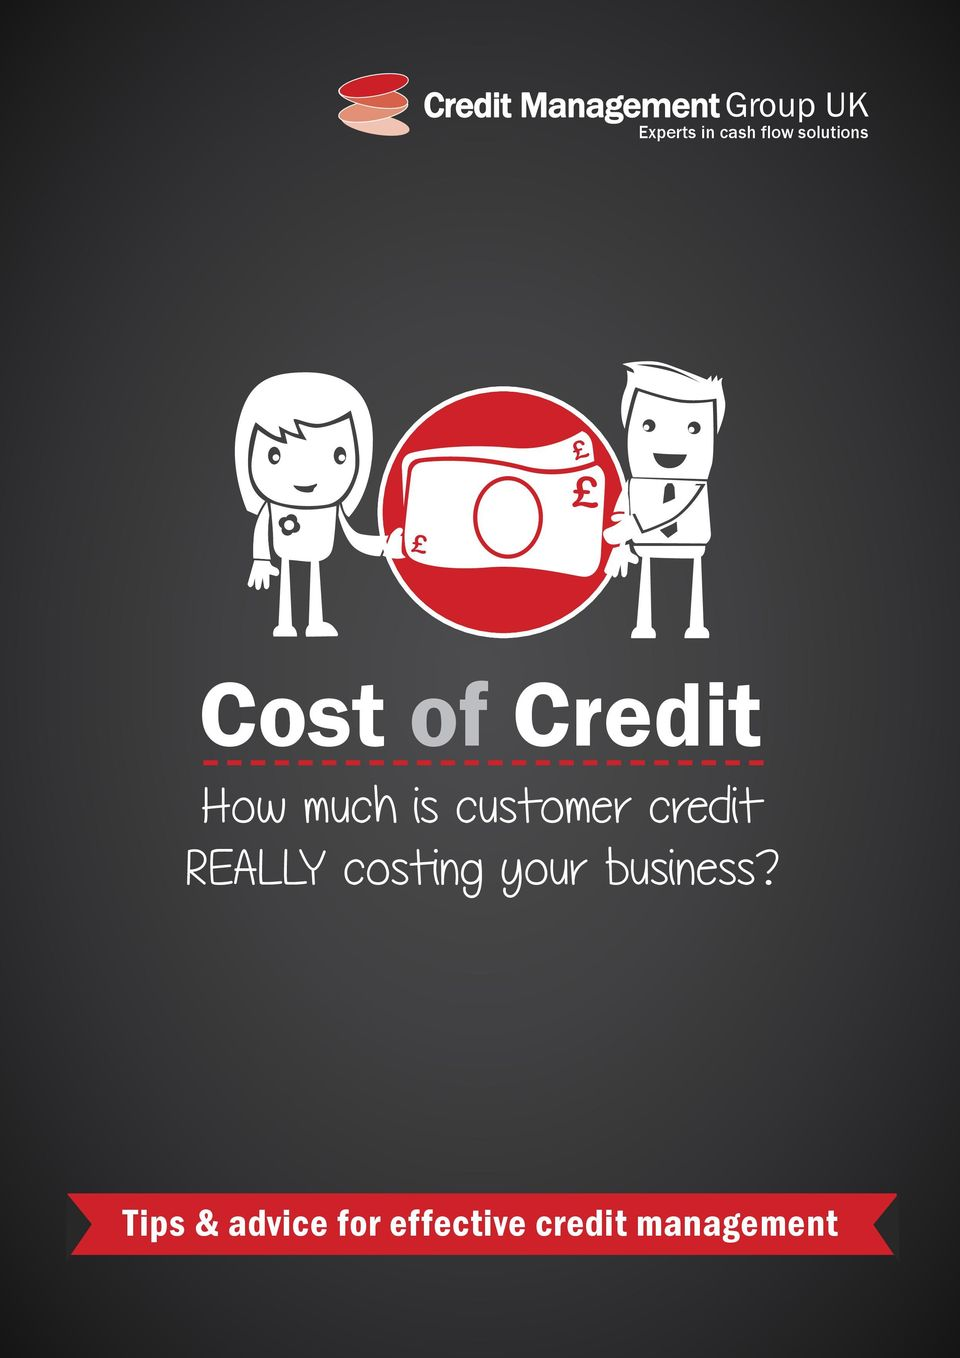 costing your business?